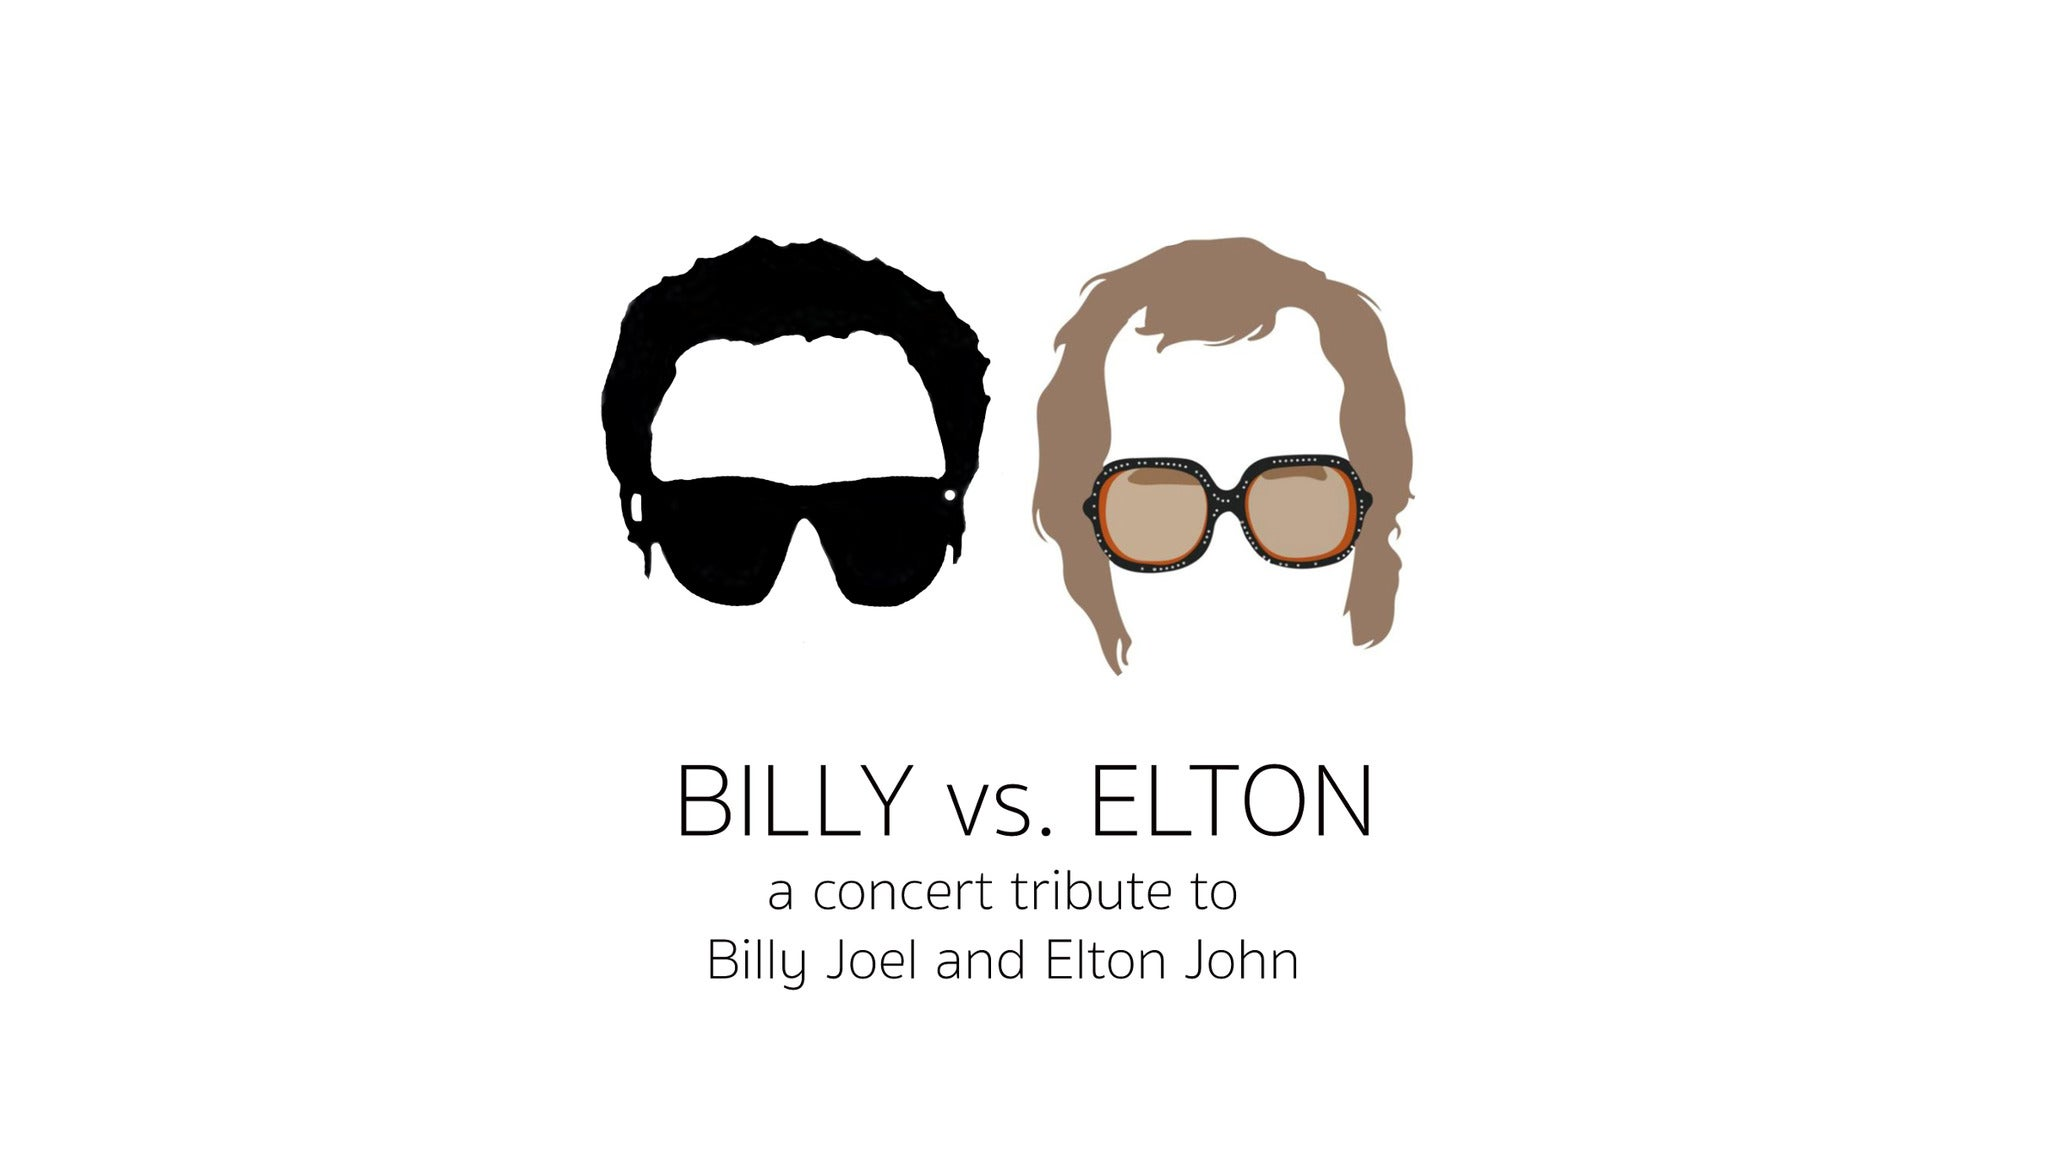 A Tribute To Elton John and Billy Joel